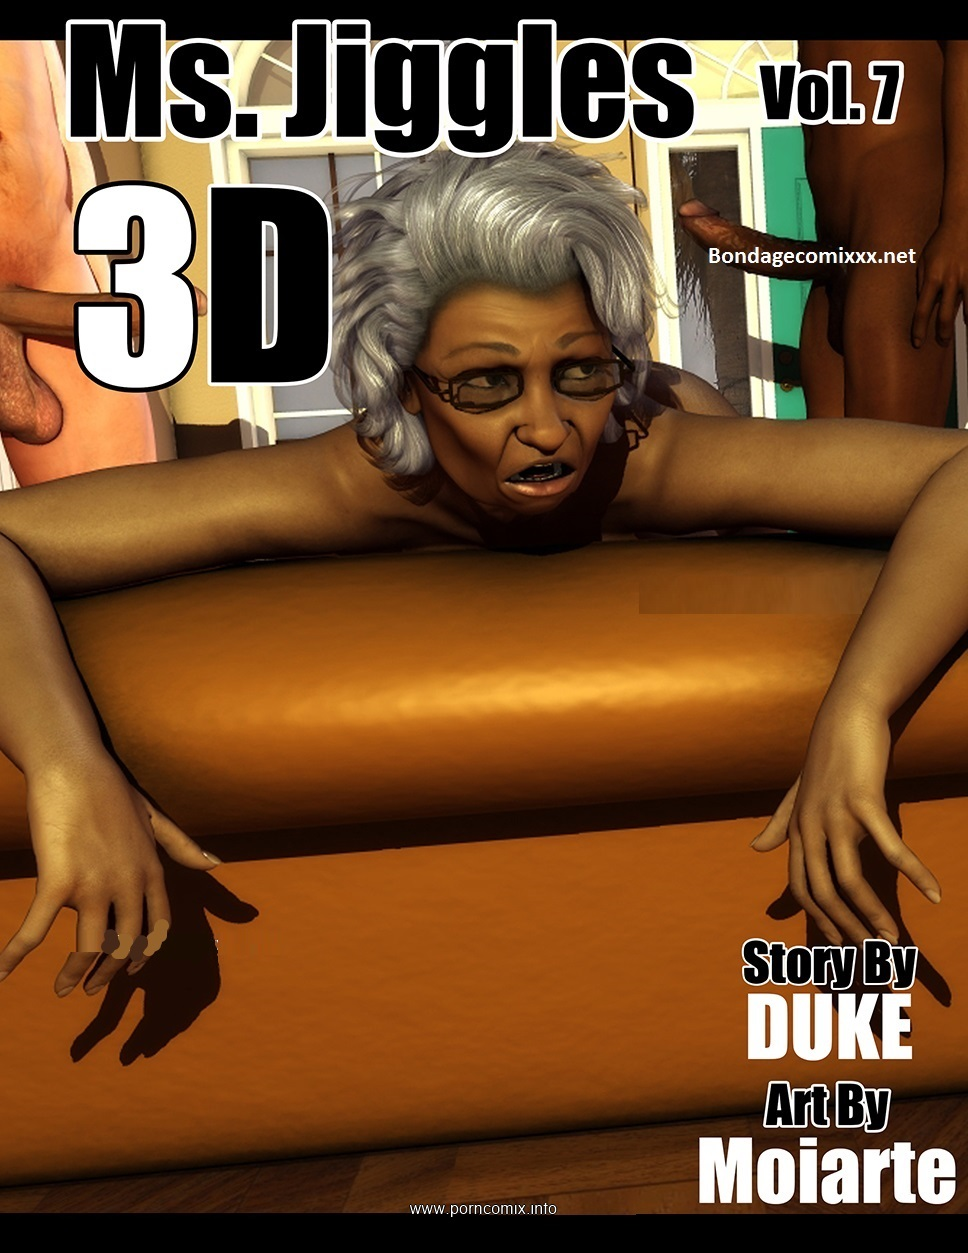 Ms Jiggles 3D – Vol 7- Duke Honey image 1